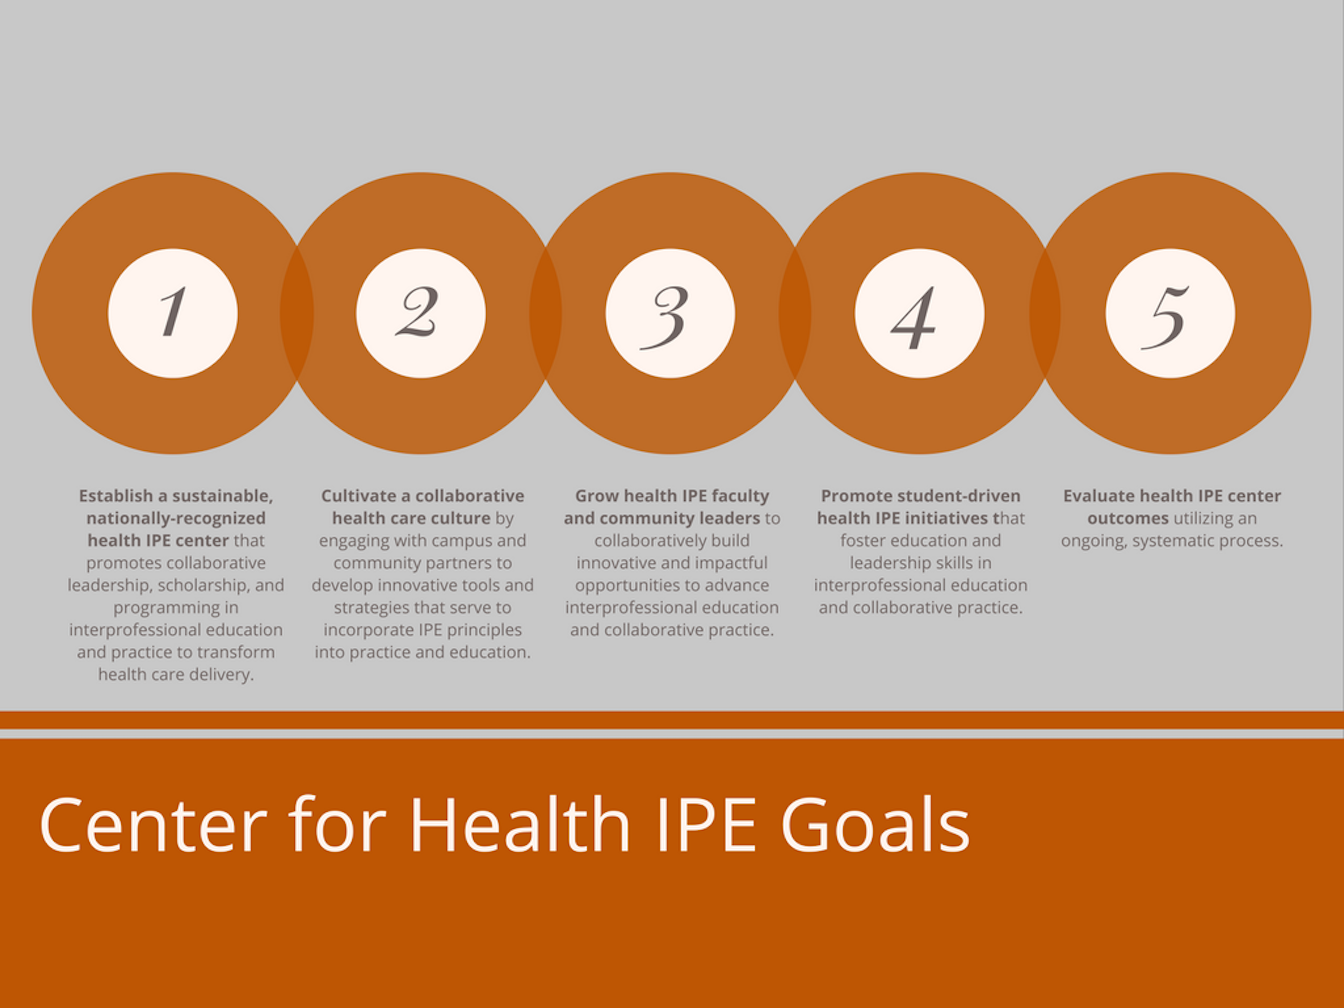 Goals: Establish a sustainable IPE center; cultivate a collaborative health care culture; grow IPE faculty and community leaders; promote student-driven health IPE programs; evaluate health IPE center outcomes